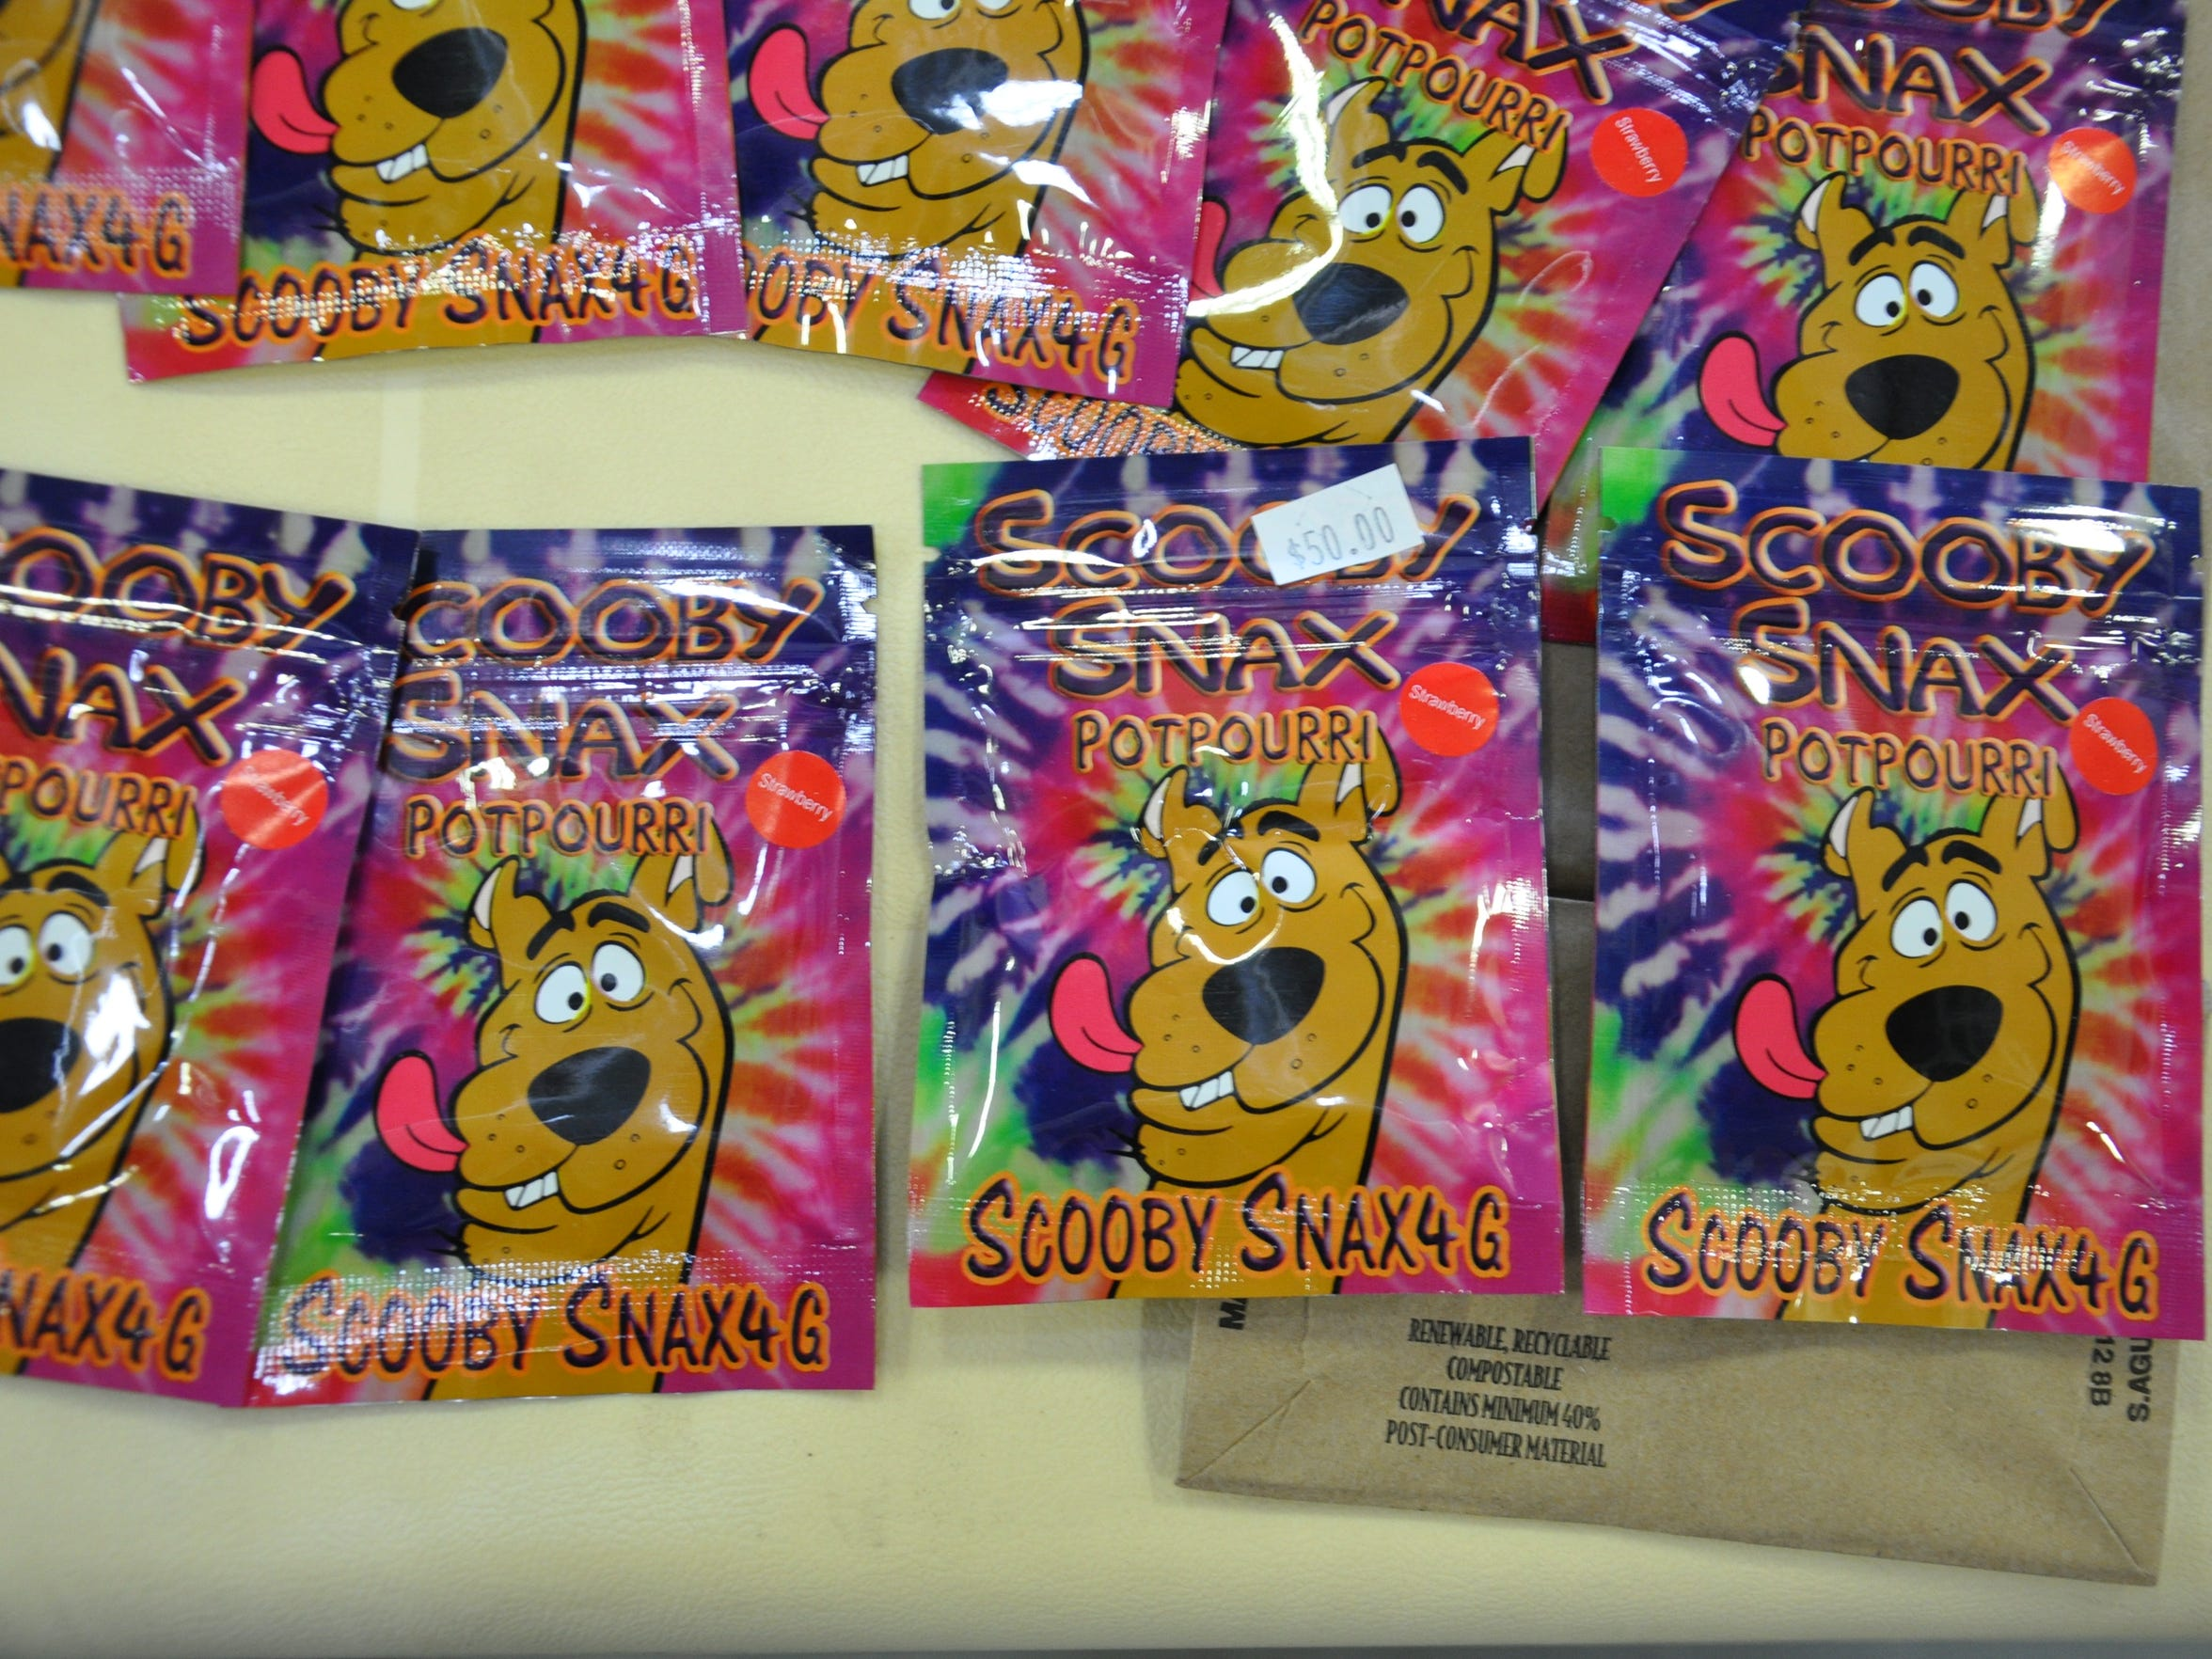 Packets advertising Scooby Snax contain the drug spice.